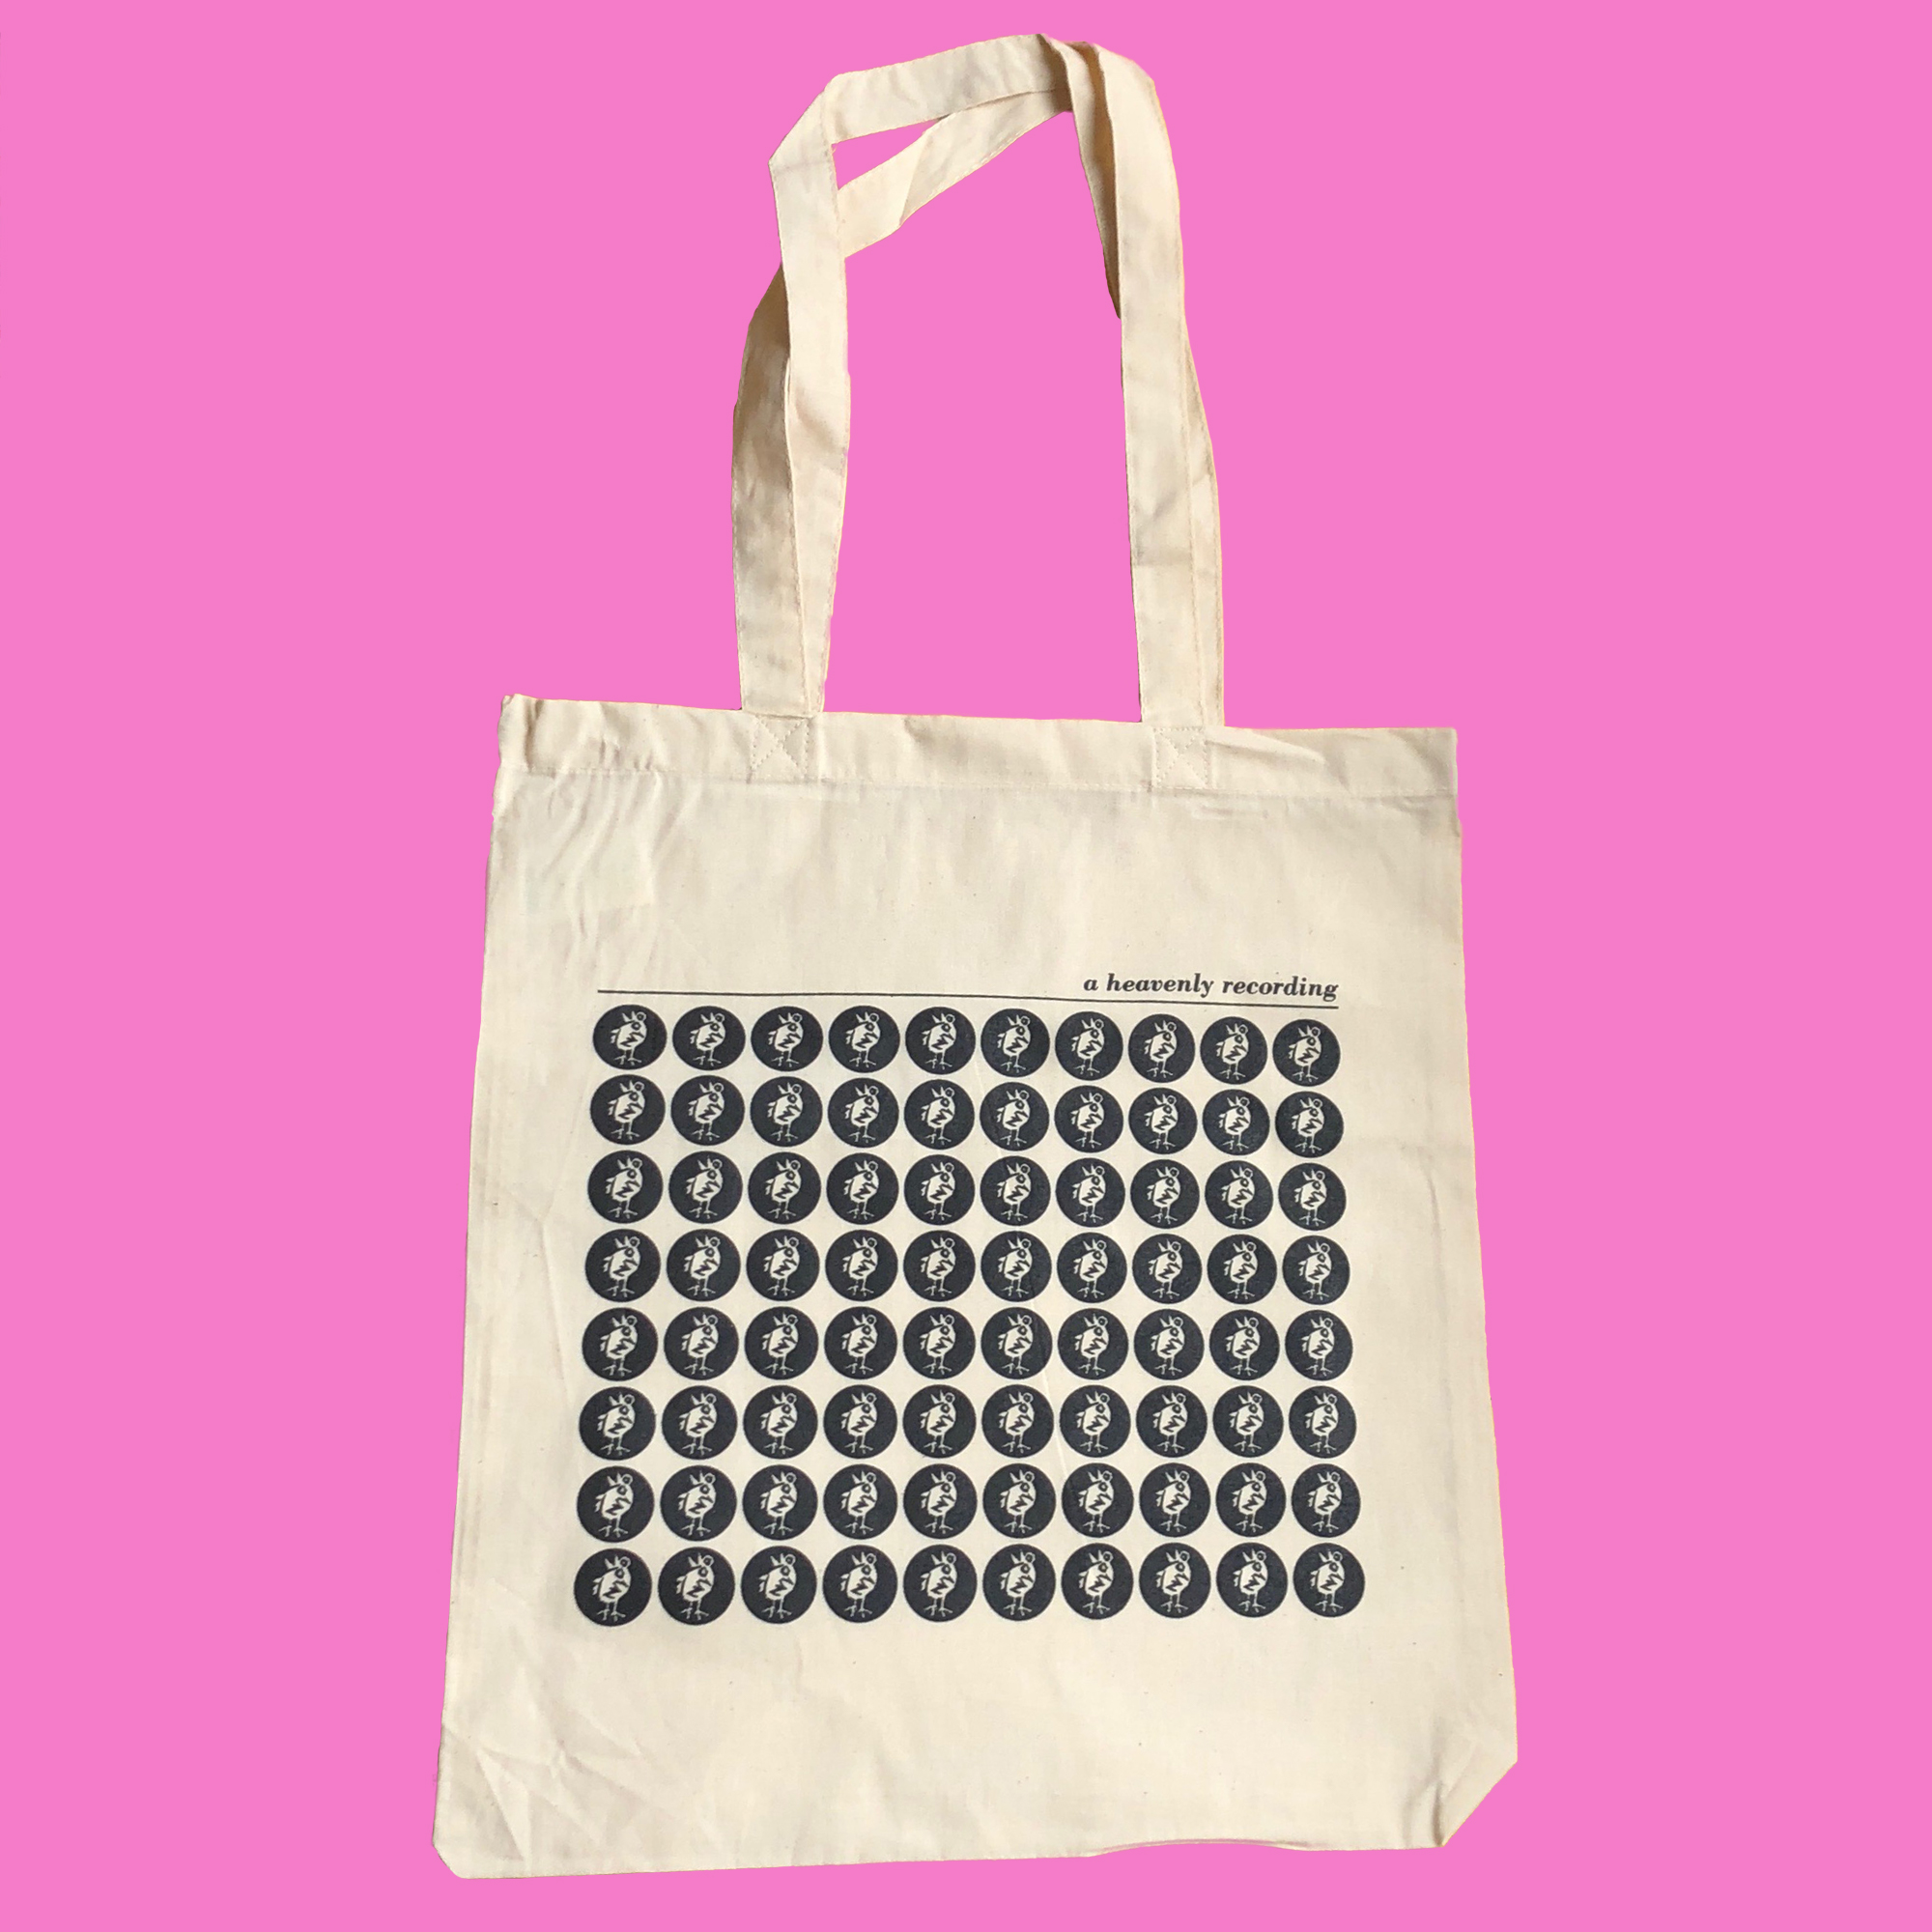 A Heavenly Recording ✵ Tote Bag